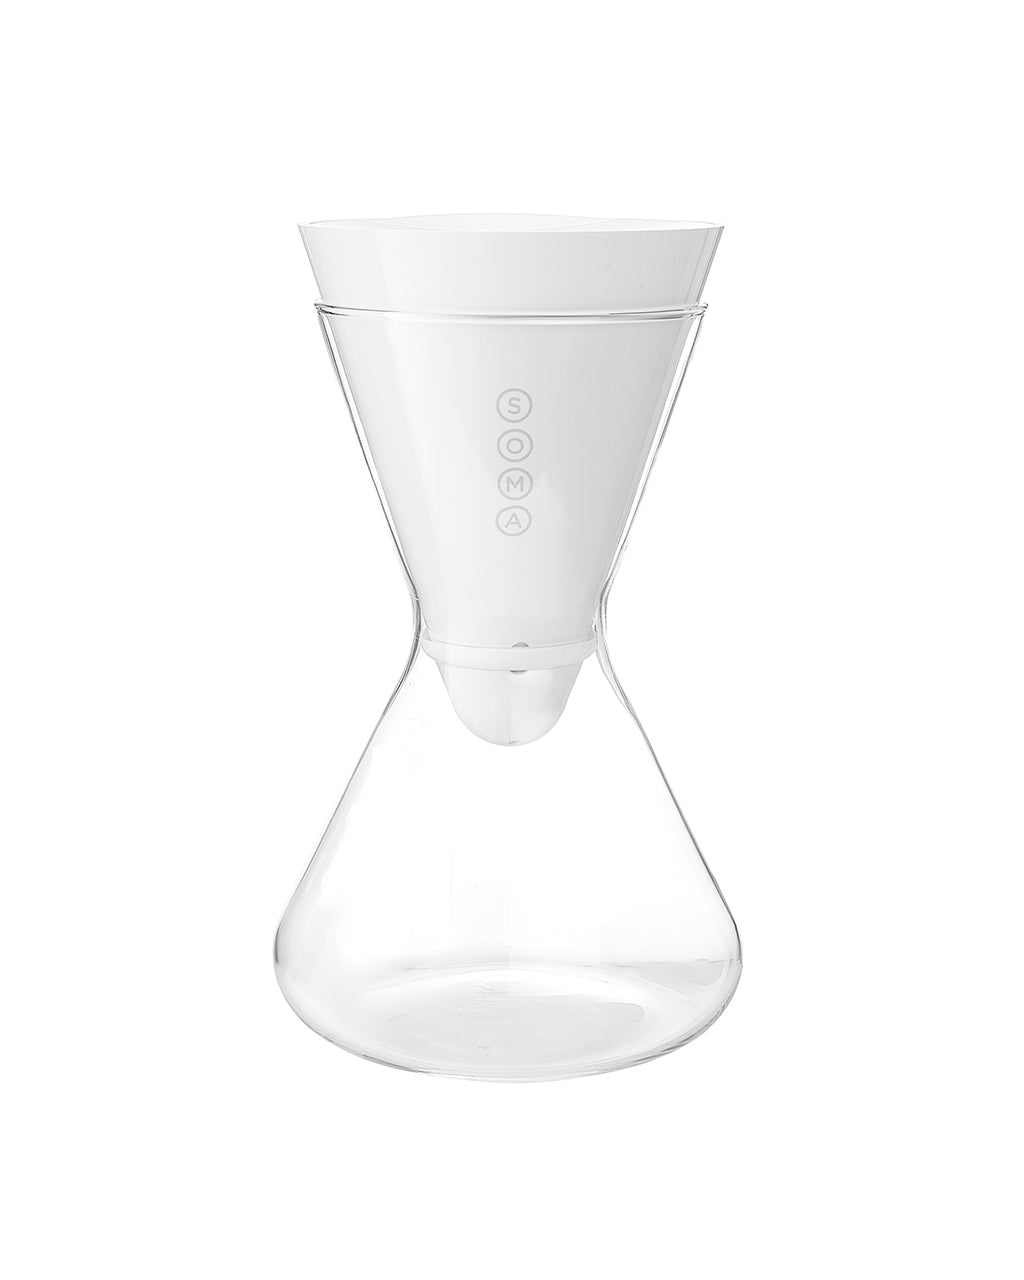 glass 6 cup carafe